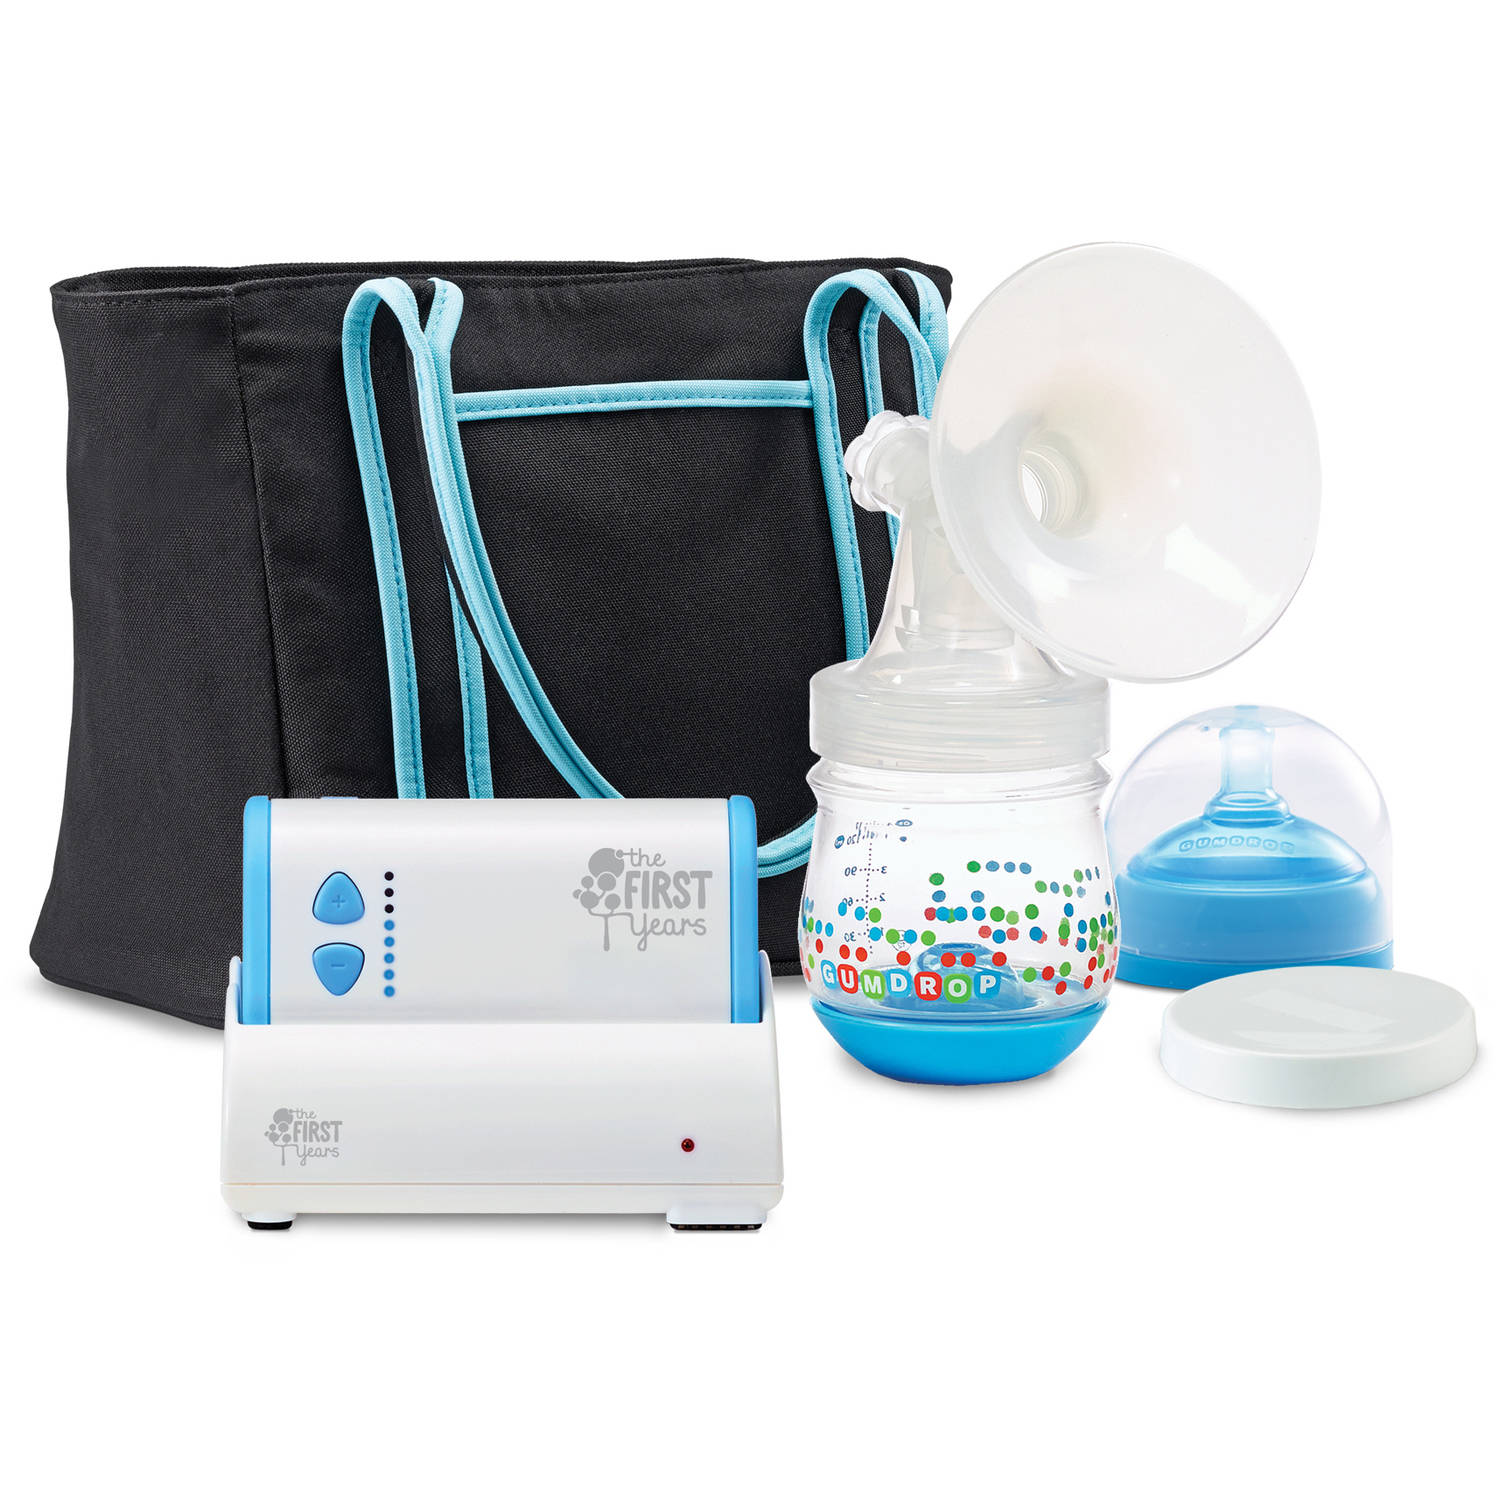 The First Years Sole Expressions Single Electric Breast Pump